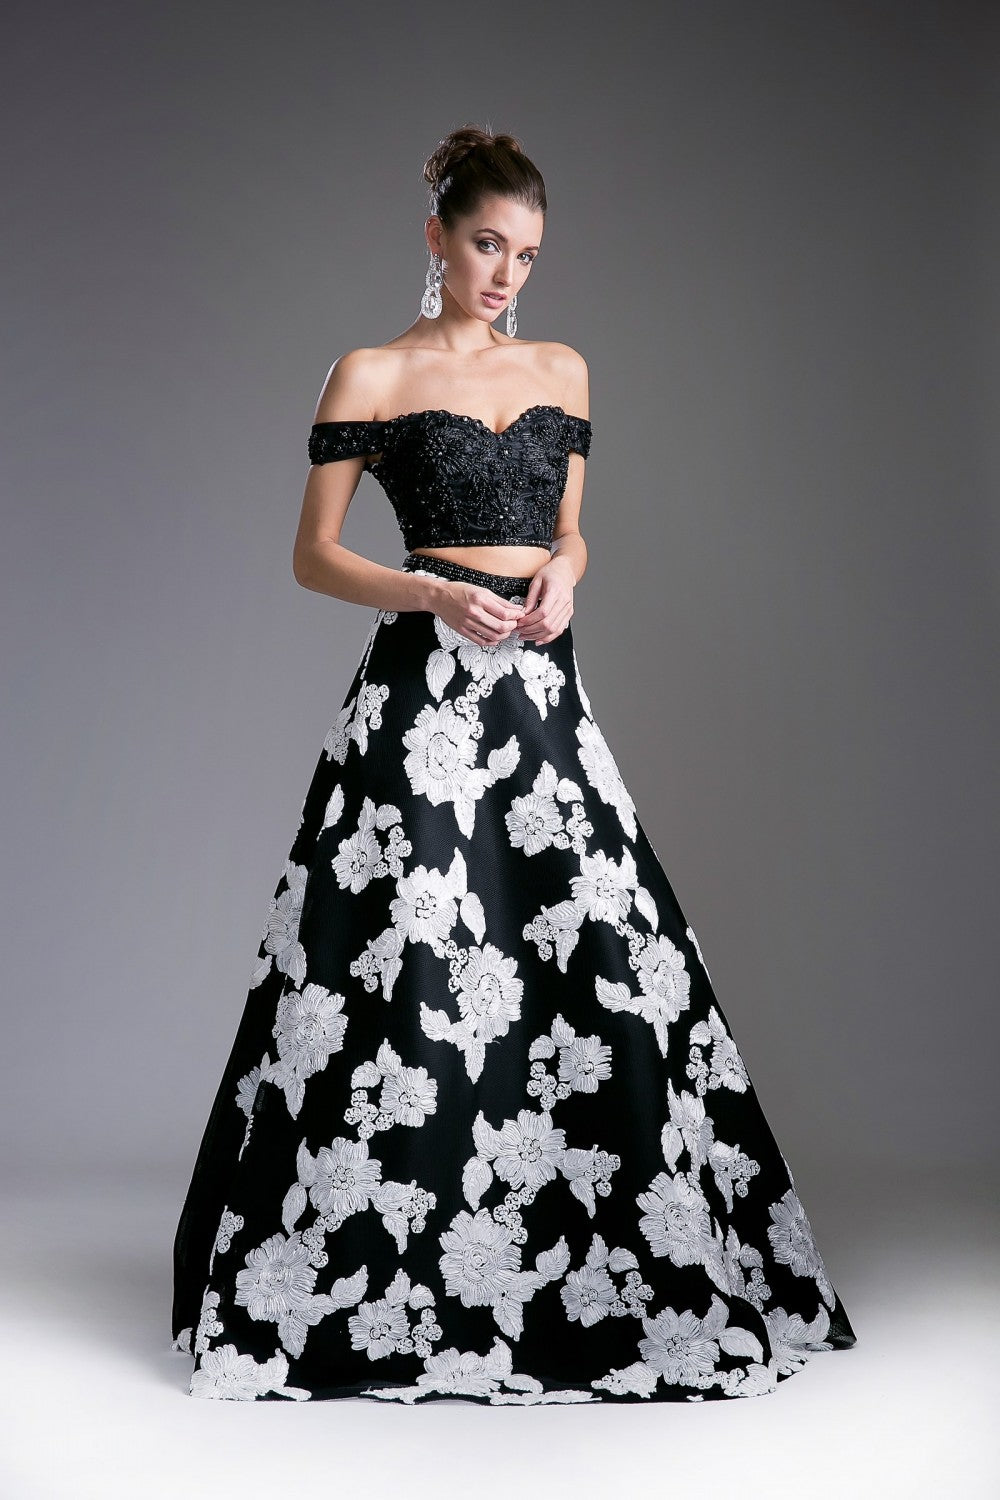 Two Piece Off The Shoulder Gown With Embelished Lace Details And Ballgown Skirt